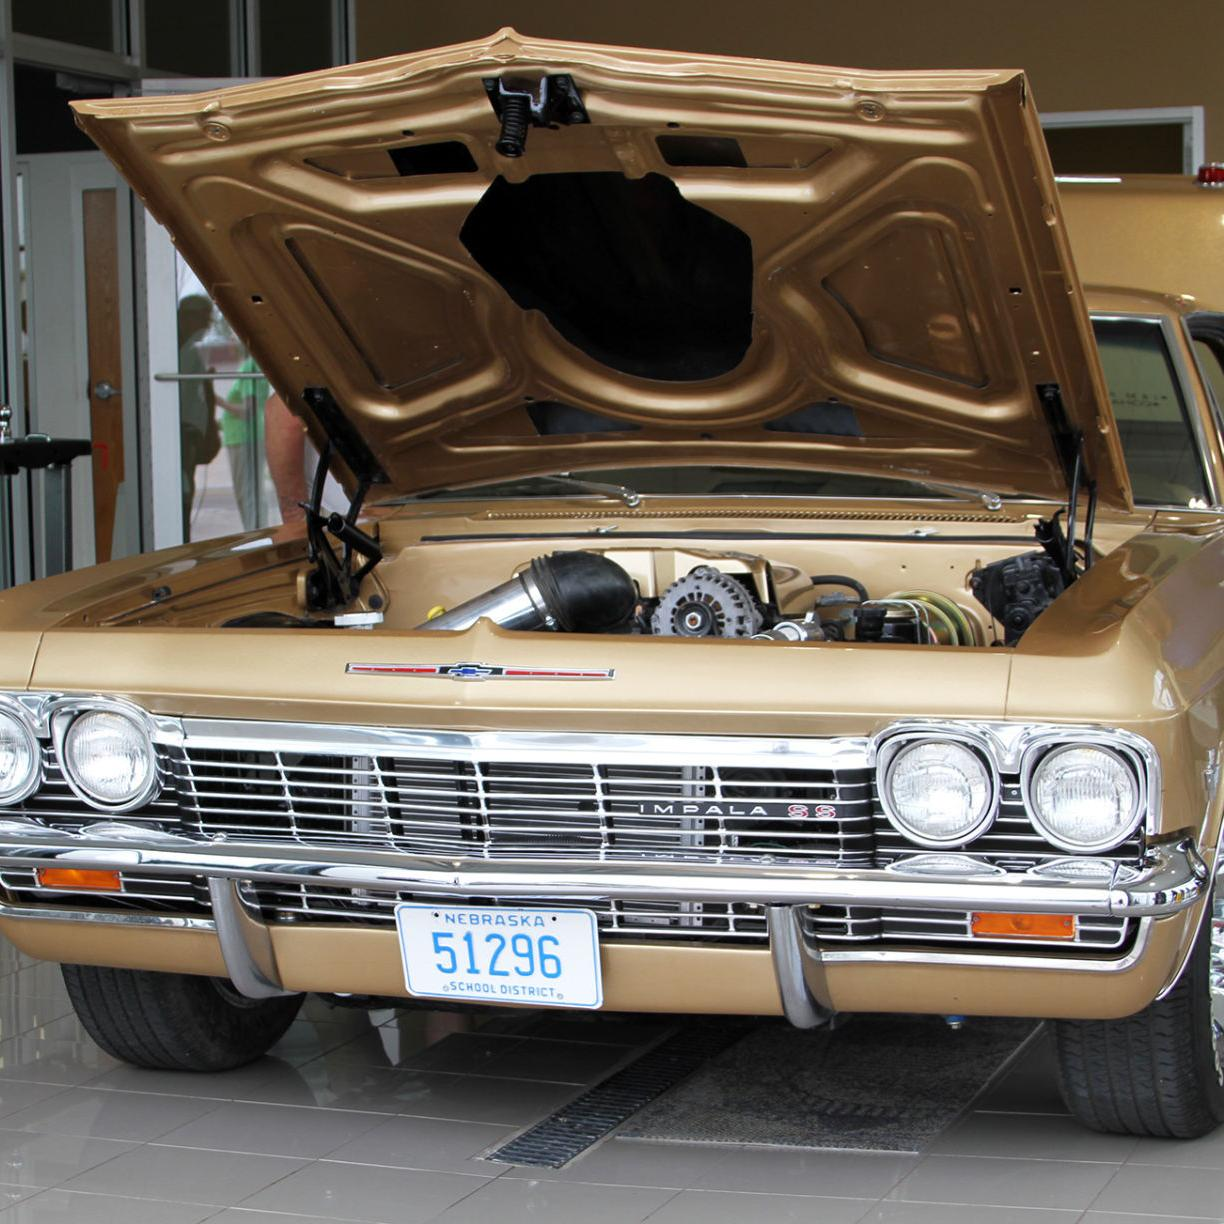 Restored '65 Impala joins car show lineup | Local News